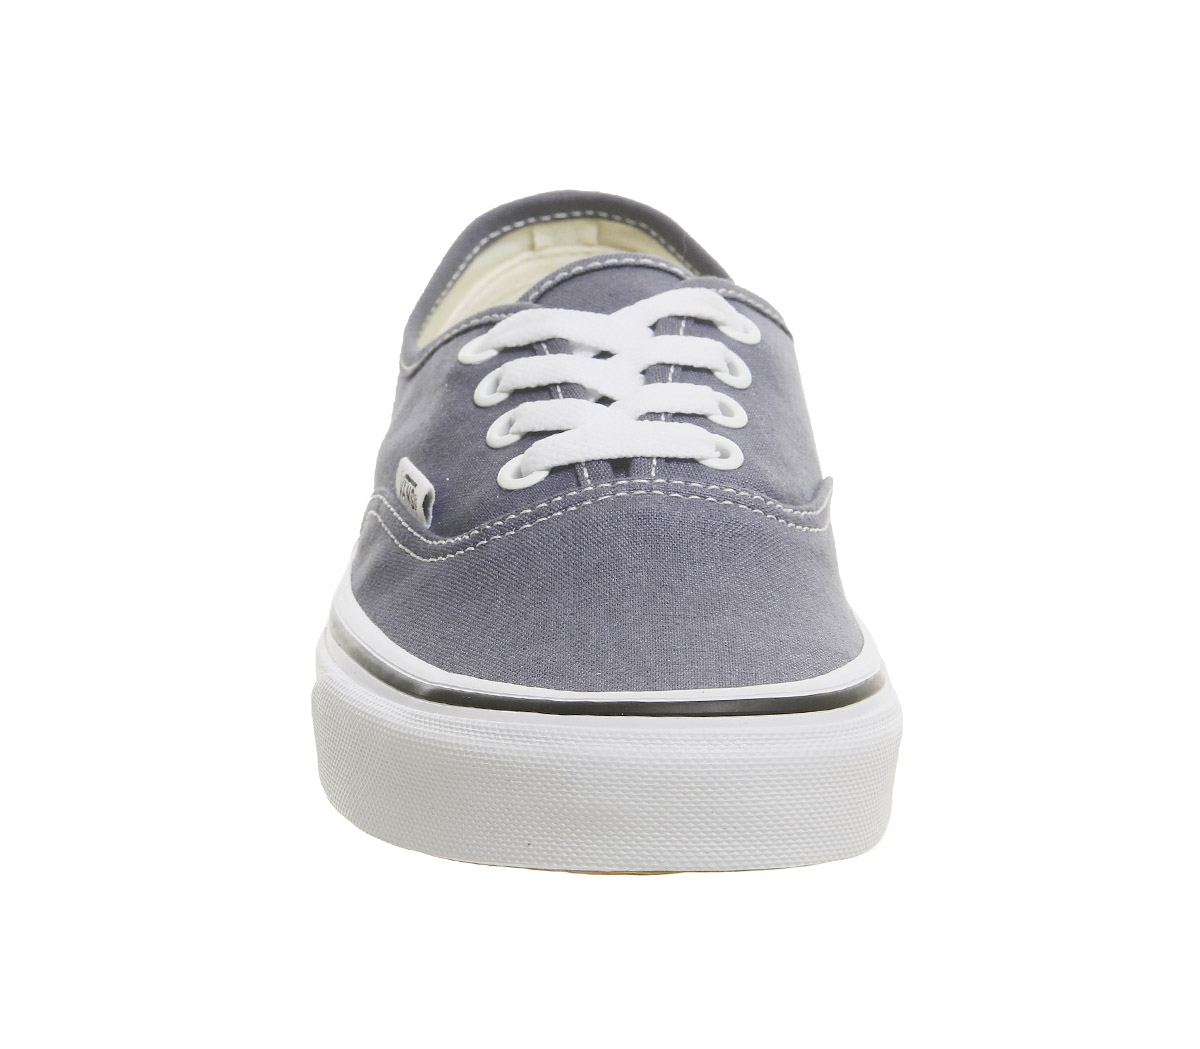 a4e1751fbfe5 Sentinel Mens Vans Authentic Trainers Grisaille True White Trainers Shoes